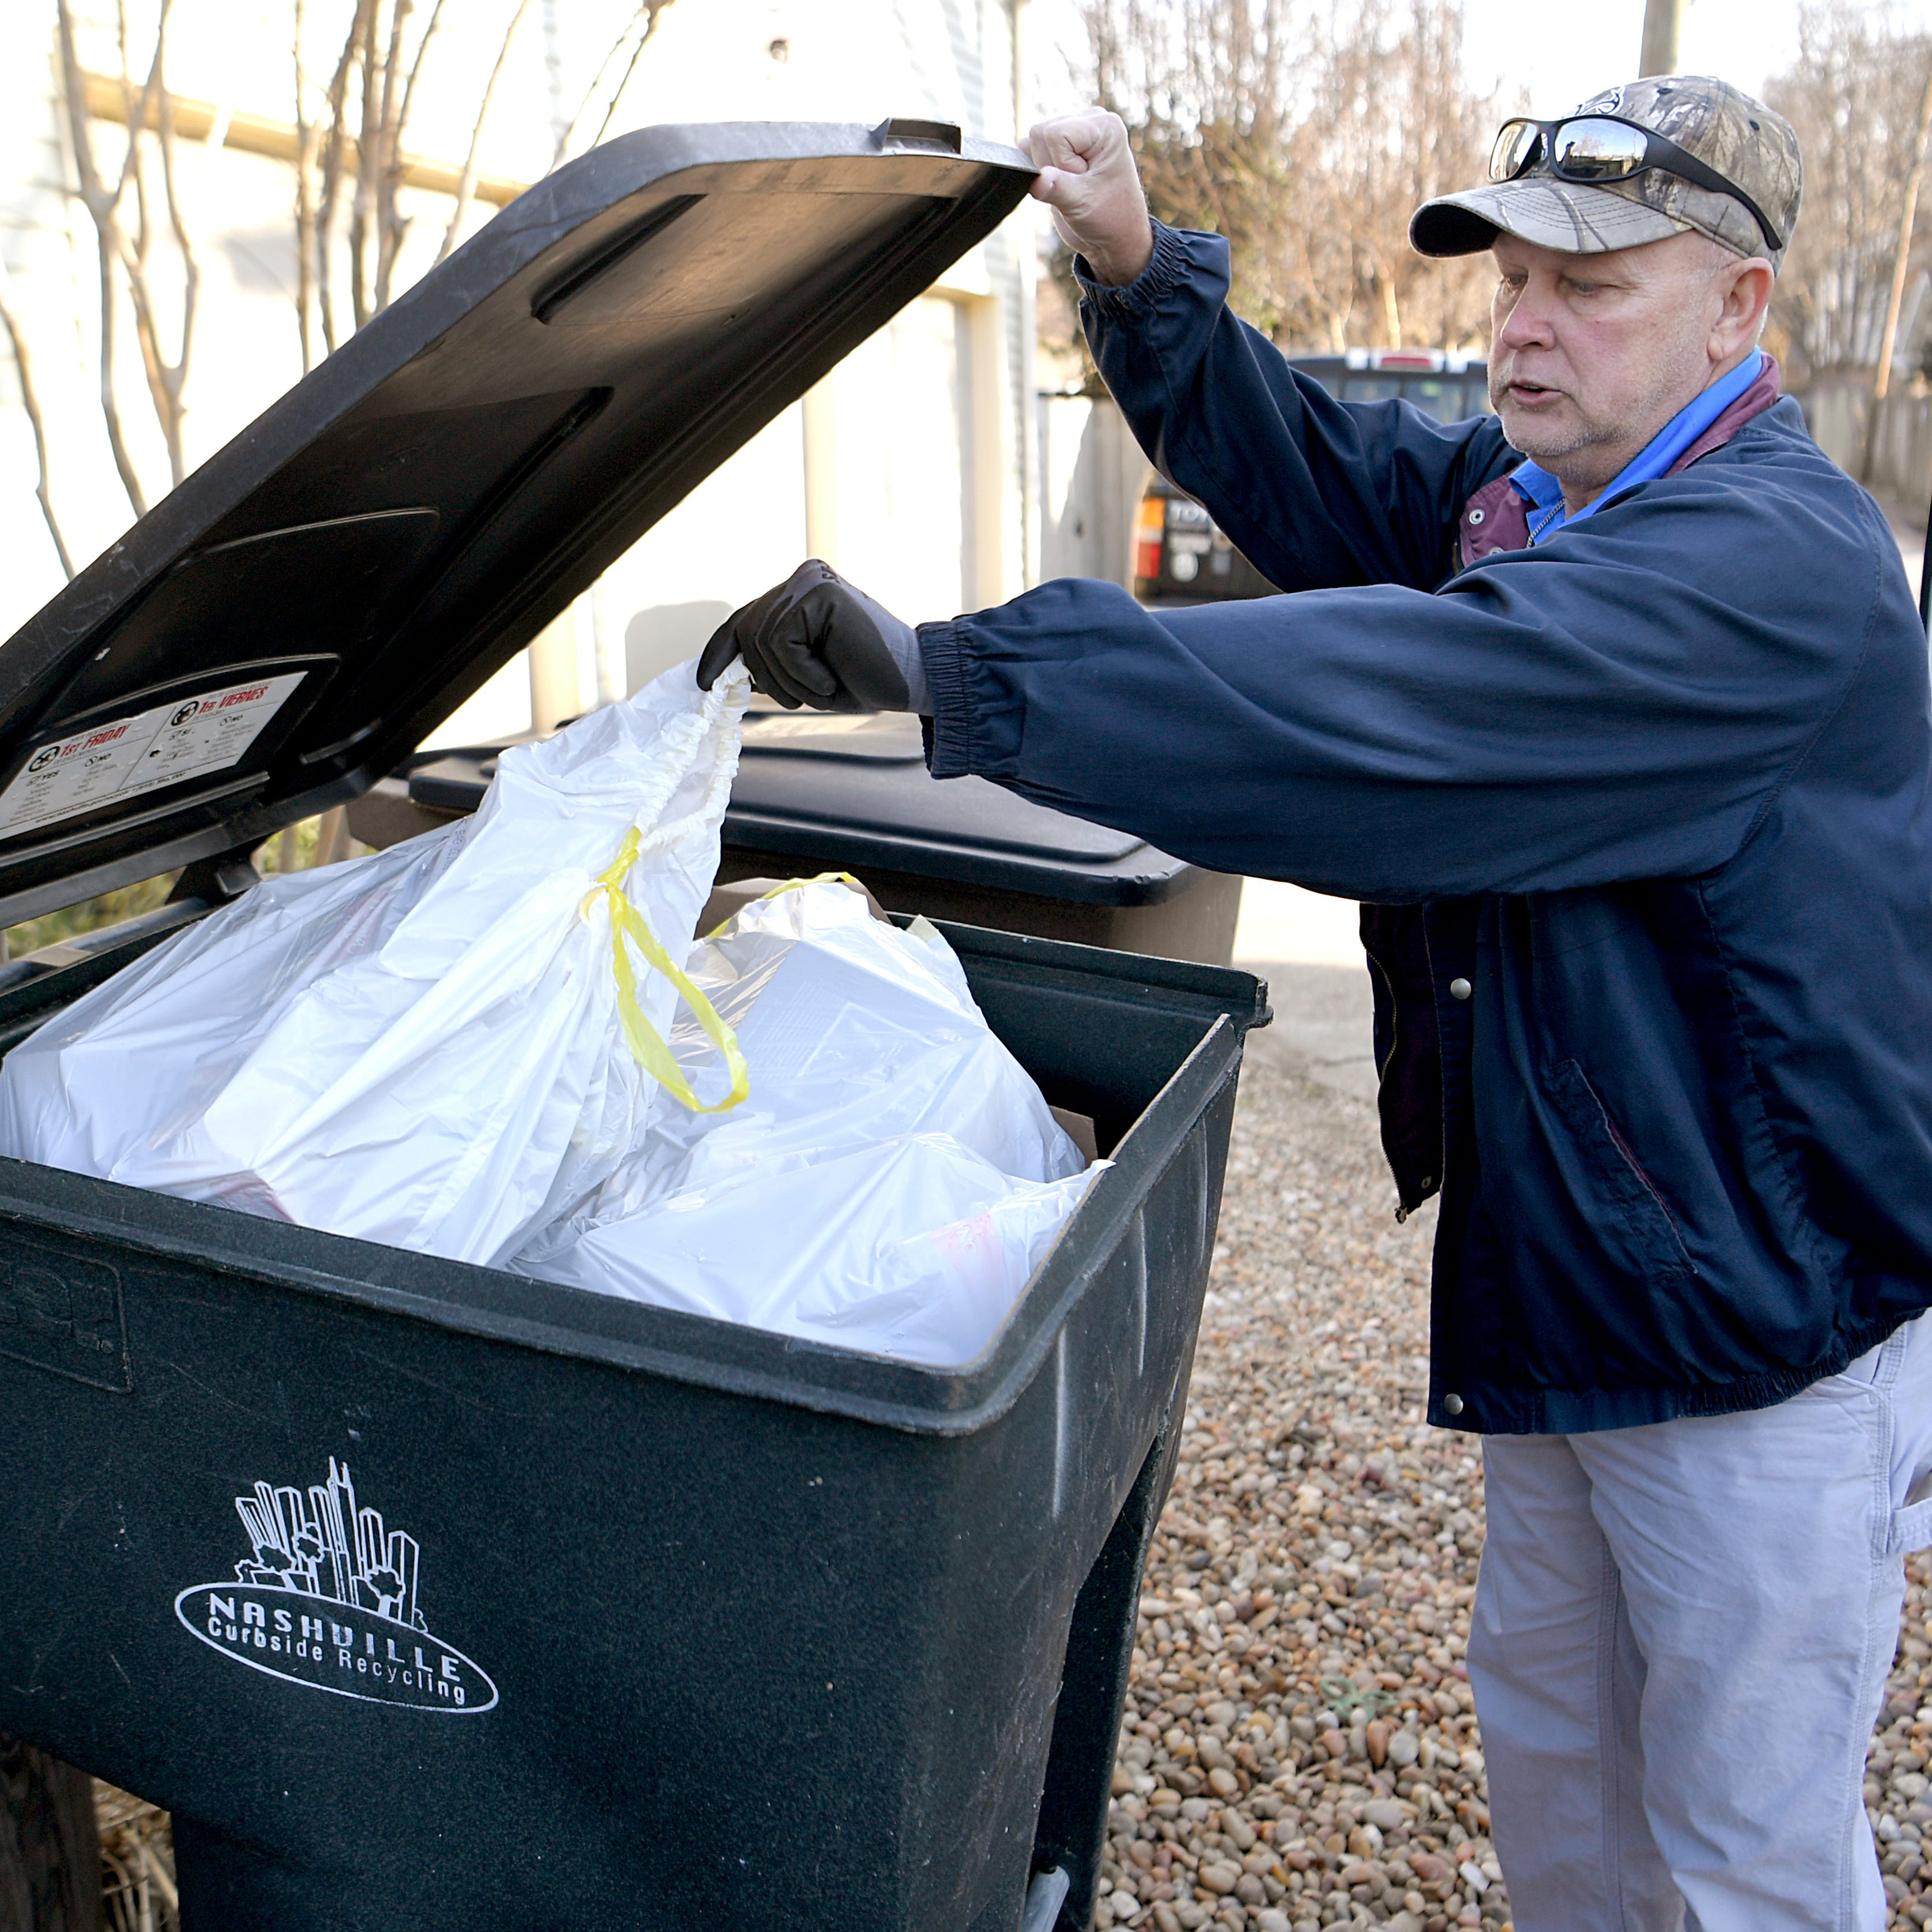 Plastic bags, pizza boxes and other ways you may be messing up your recycling